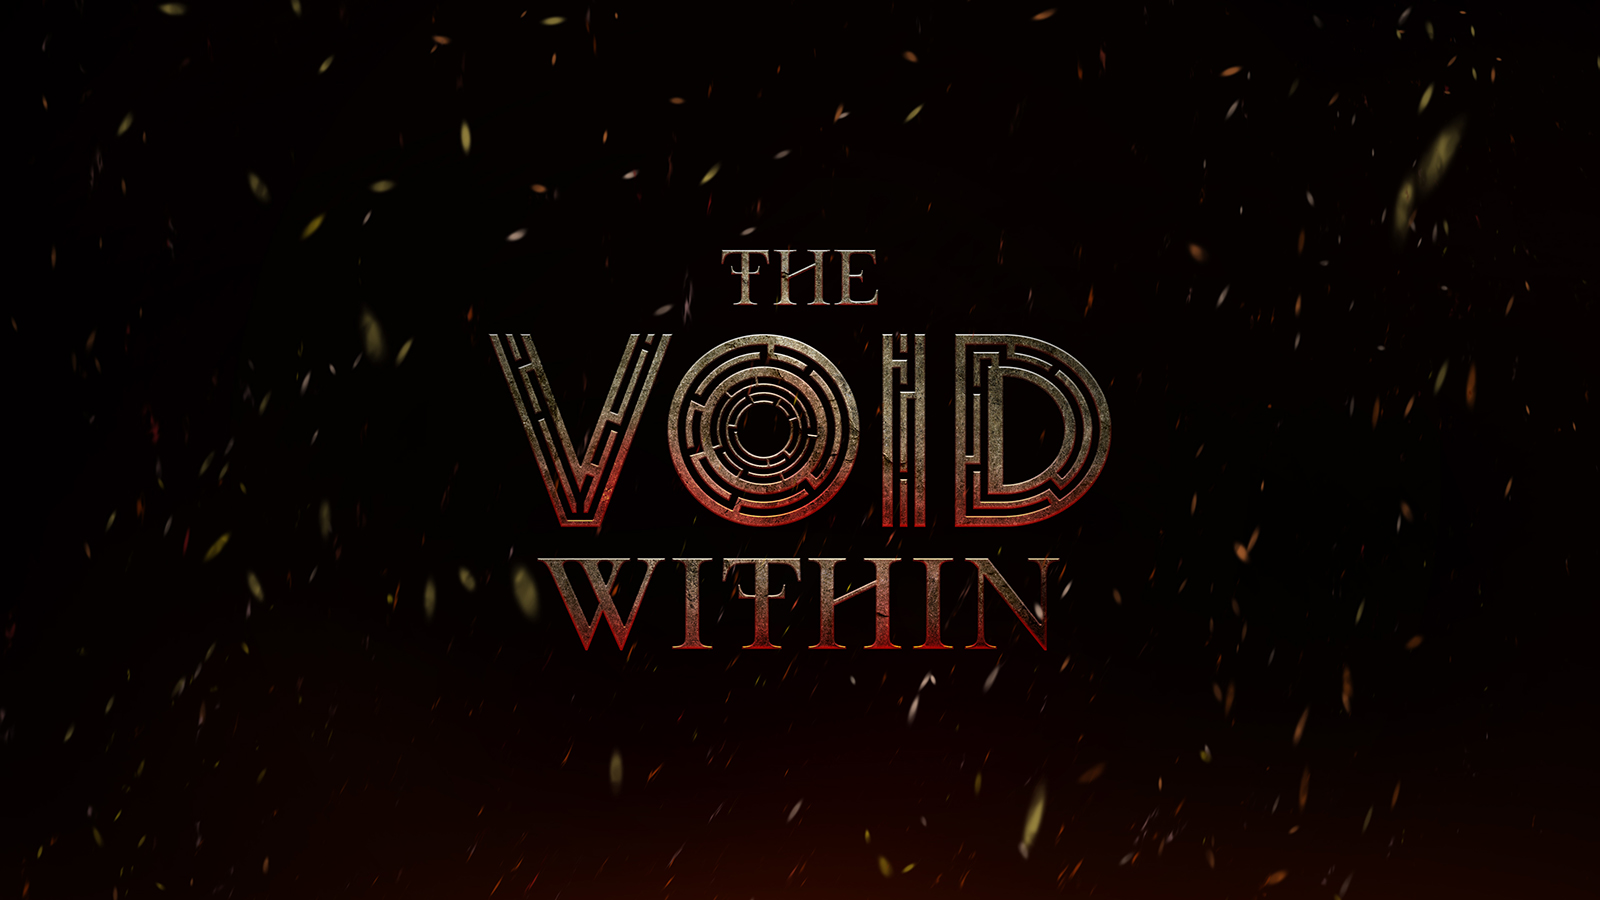 The Void Within Logo Screen Wallpaper.jpg